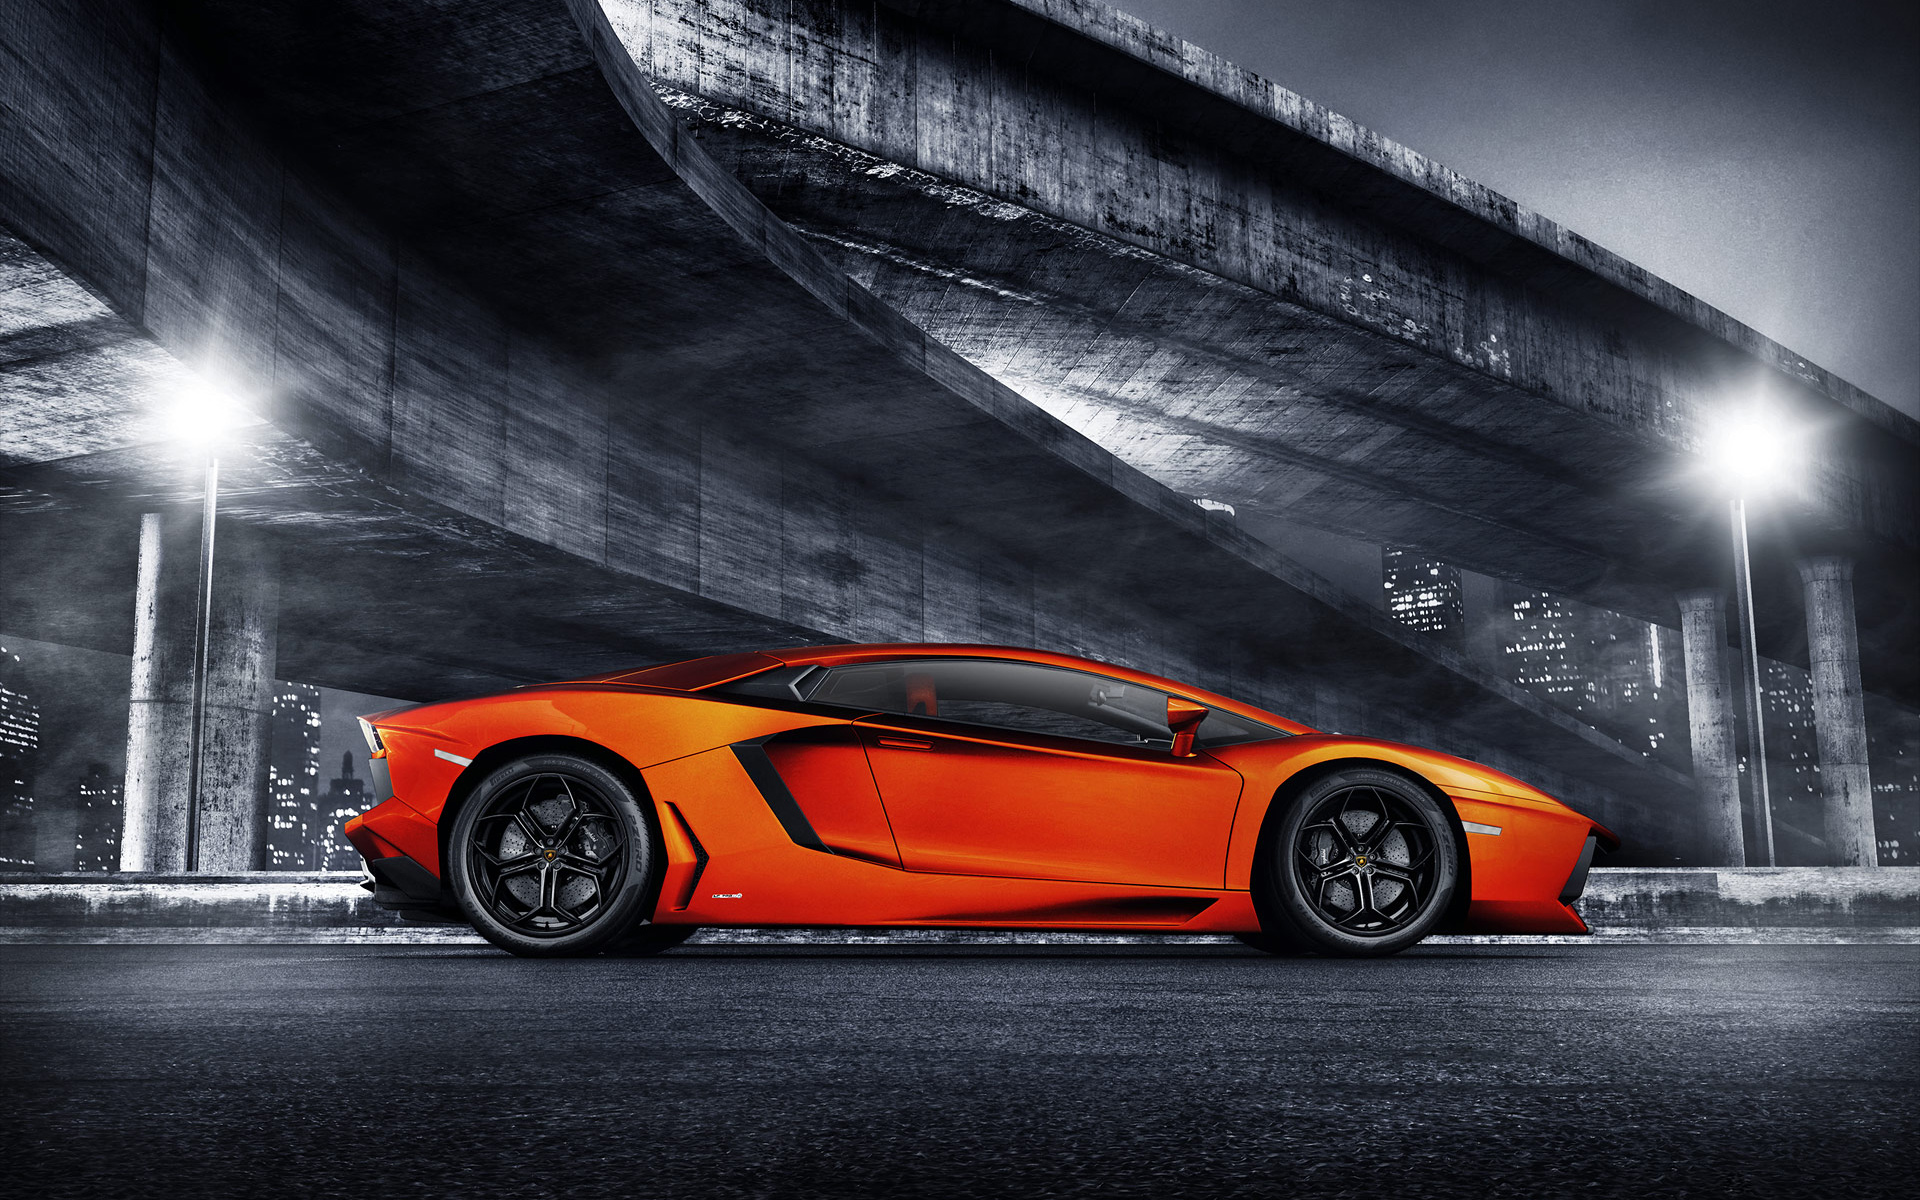 Lamborghini Aventador Sports Car Wallpapers HD Wallpapers 1920x1200